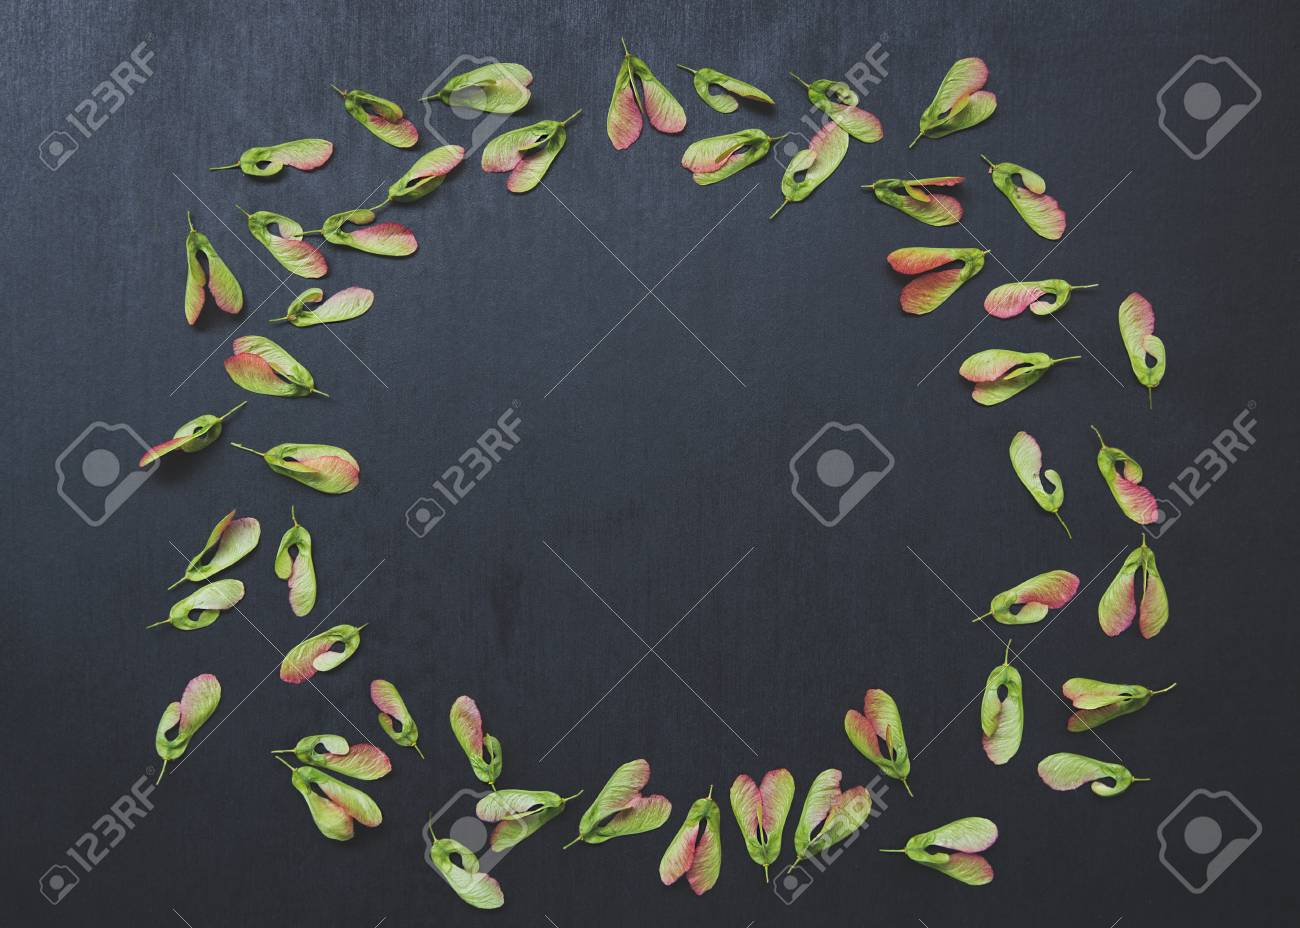 maple seed pattern on a dark background